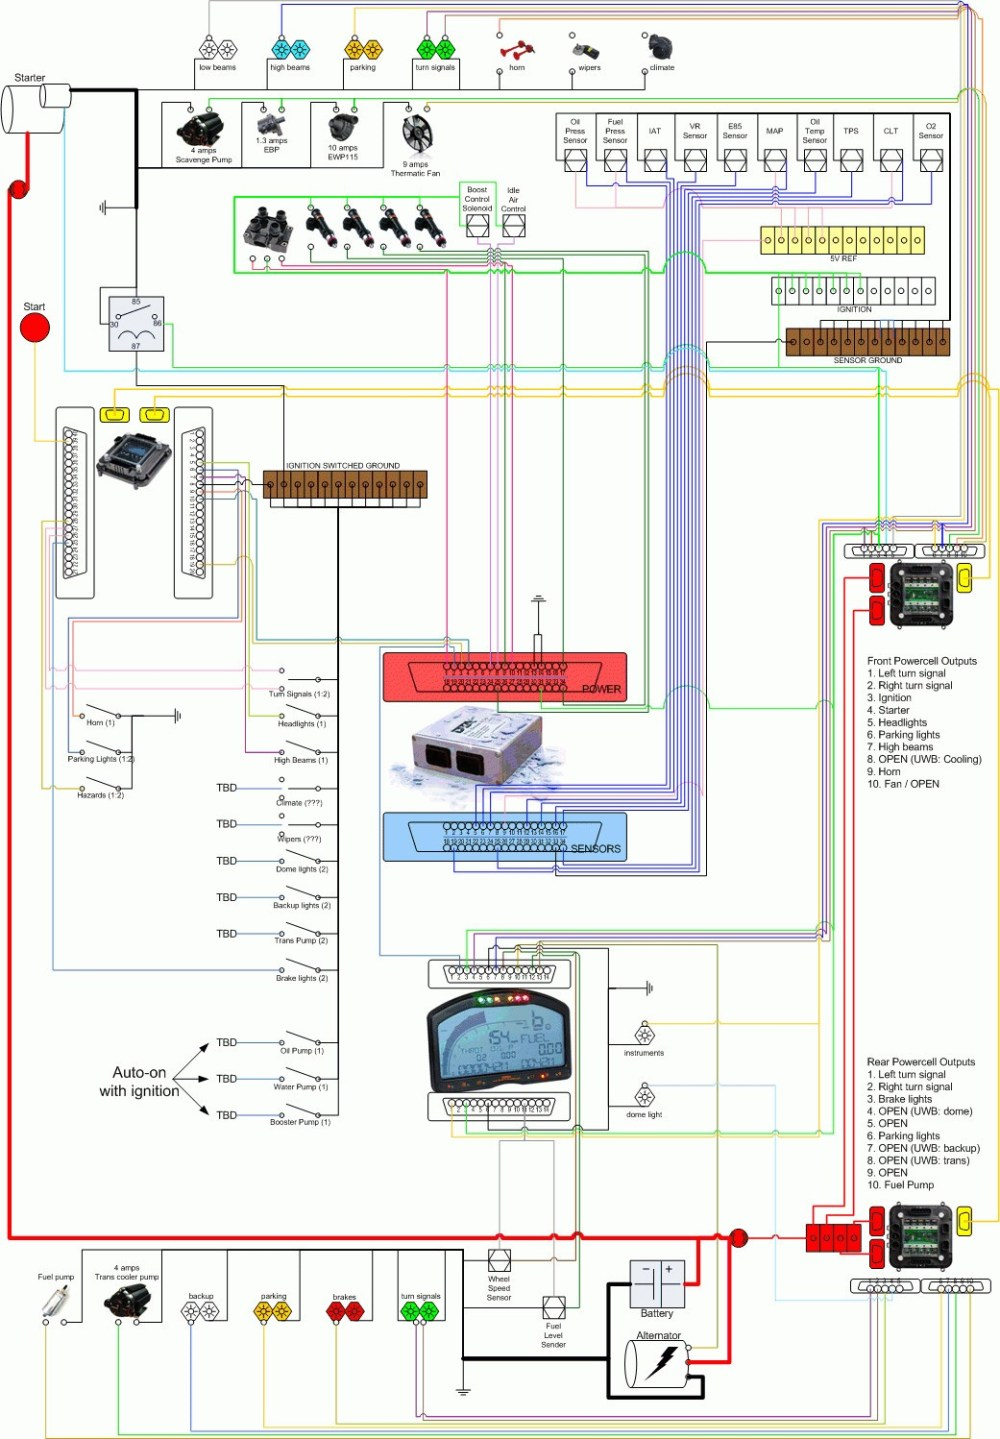 medium resolution of nhra car wiring diagram wiring diagram for youmad electronics nhra wiring diagram 14